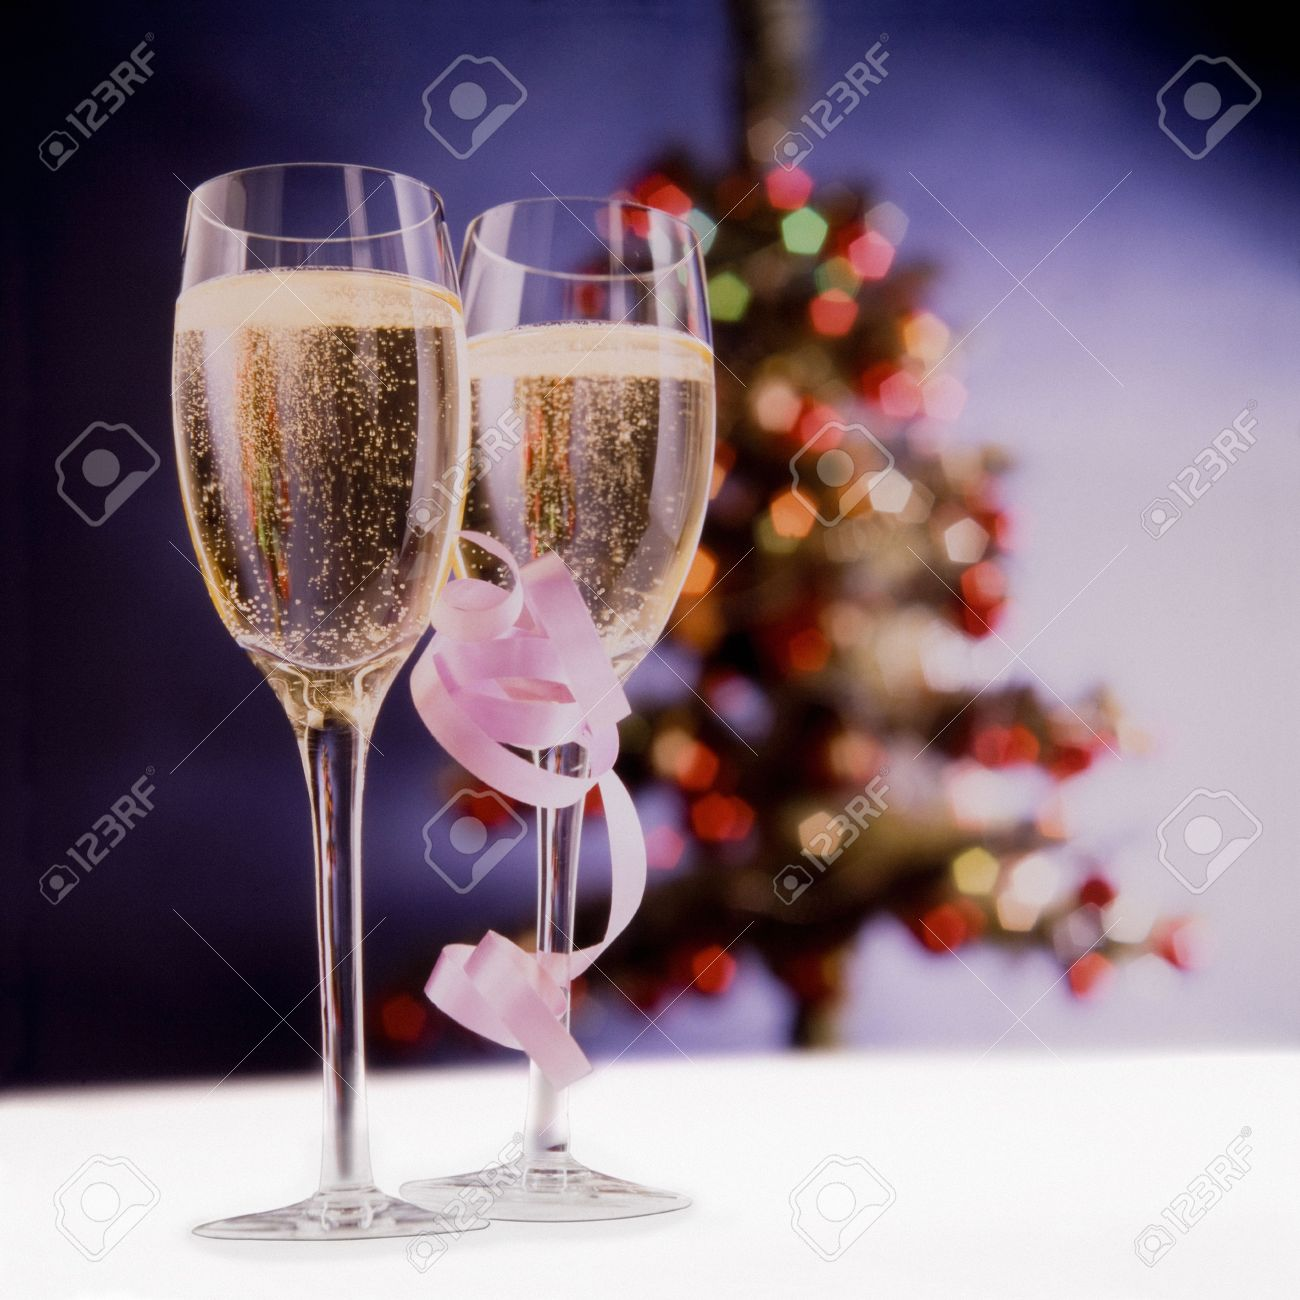 Glasses Of Champagne To Drink A Christmas Toast. Stock Photo ...